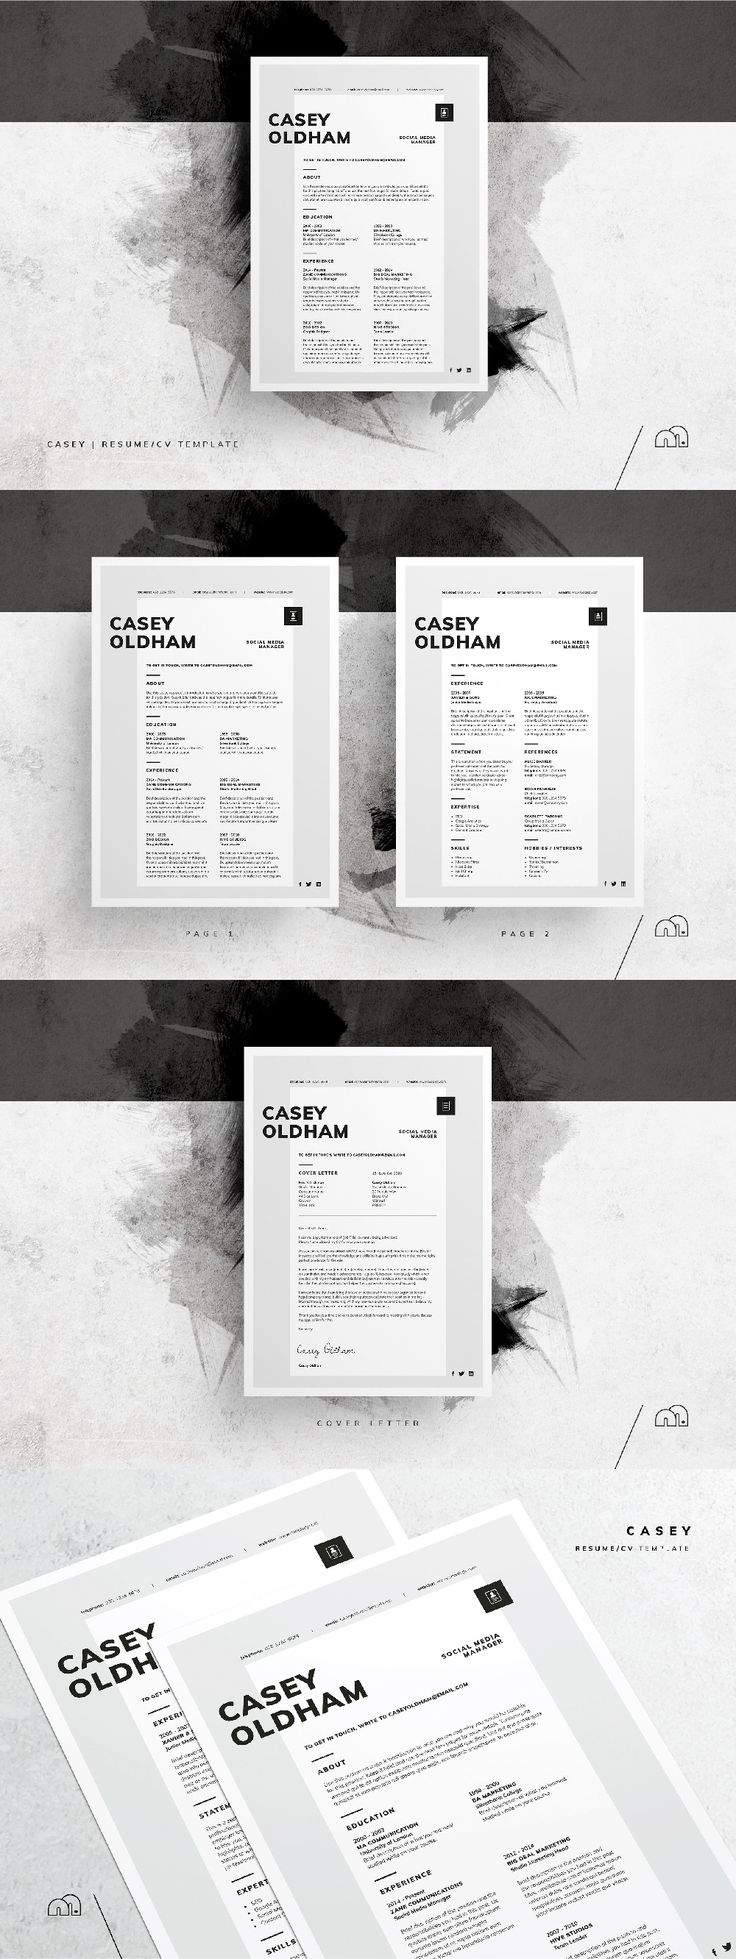 cover letter template for receptionist%0A Resume   CV Template  Casey For those looking for a professional template    u    Casey